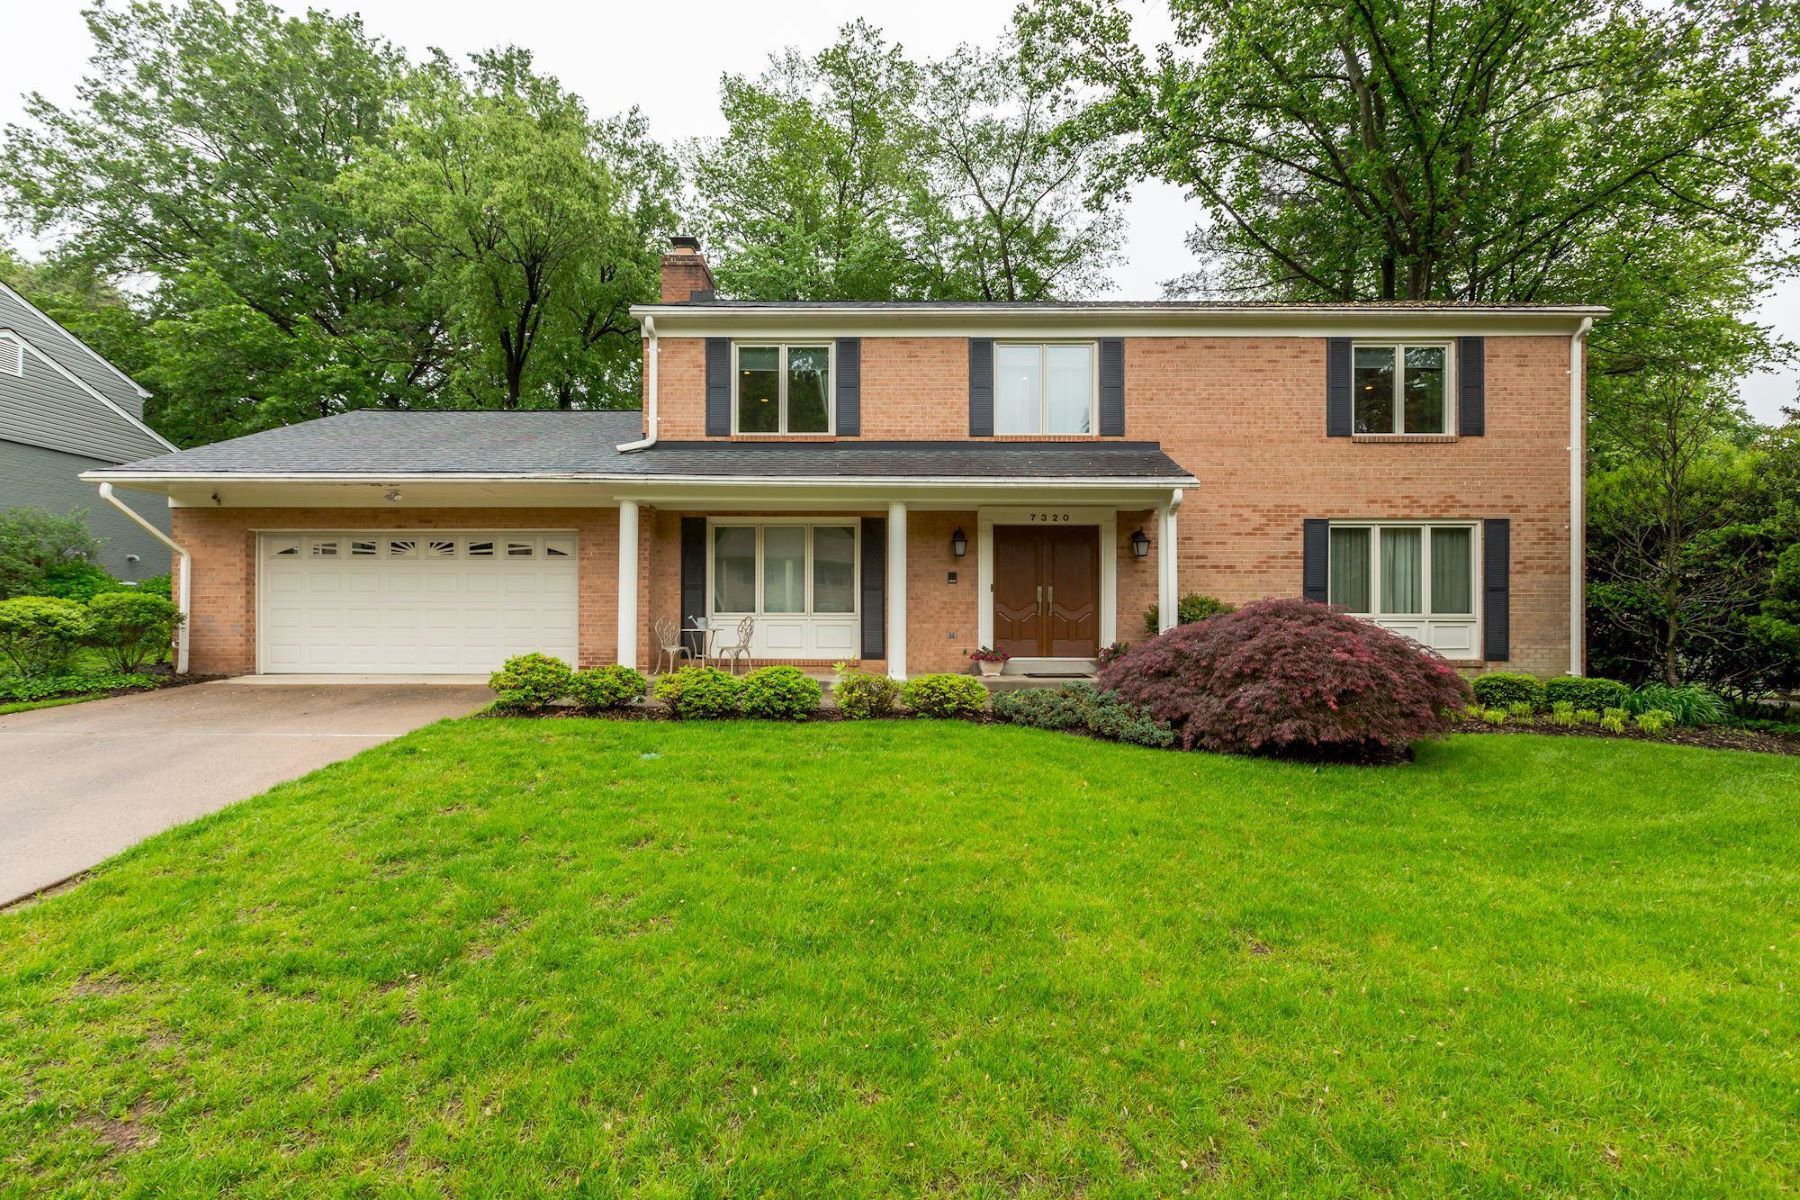 Property for Sale at 7320 Yates Ct McLean, Virginia 22101 United States